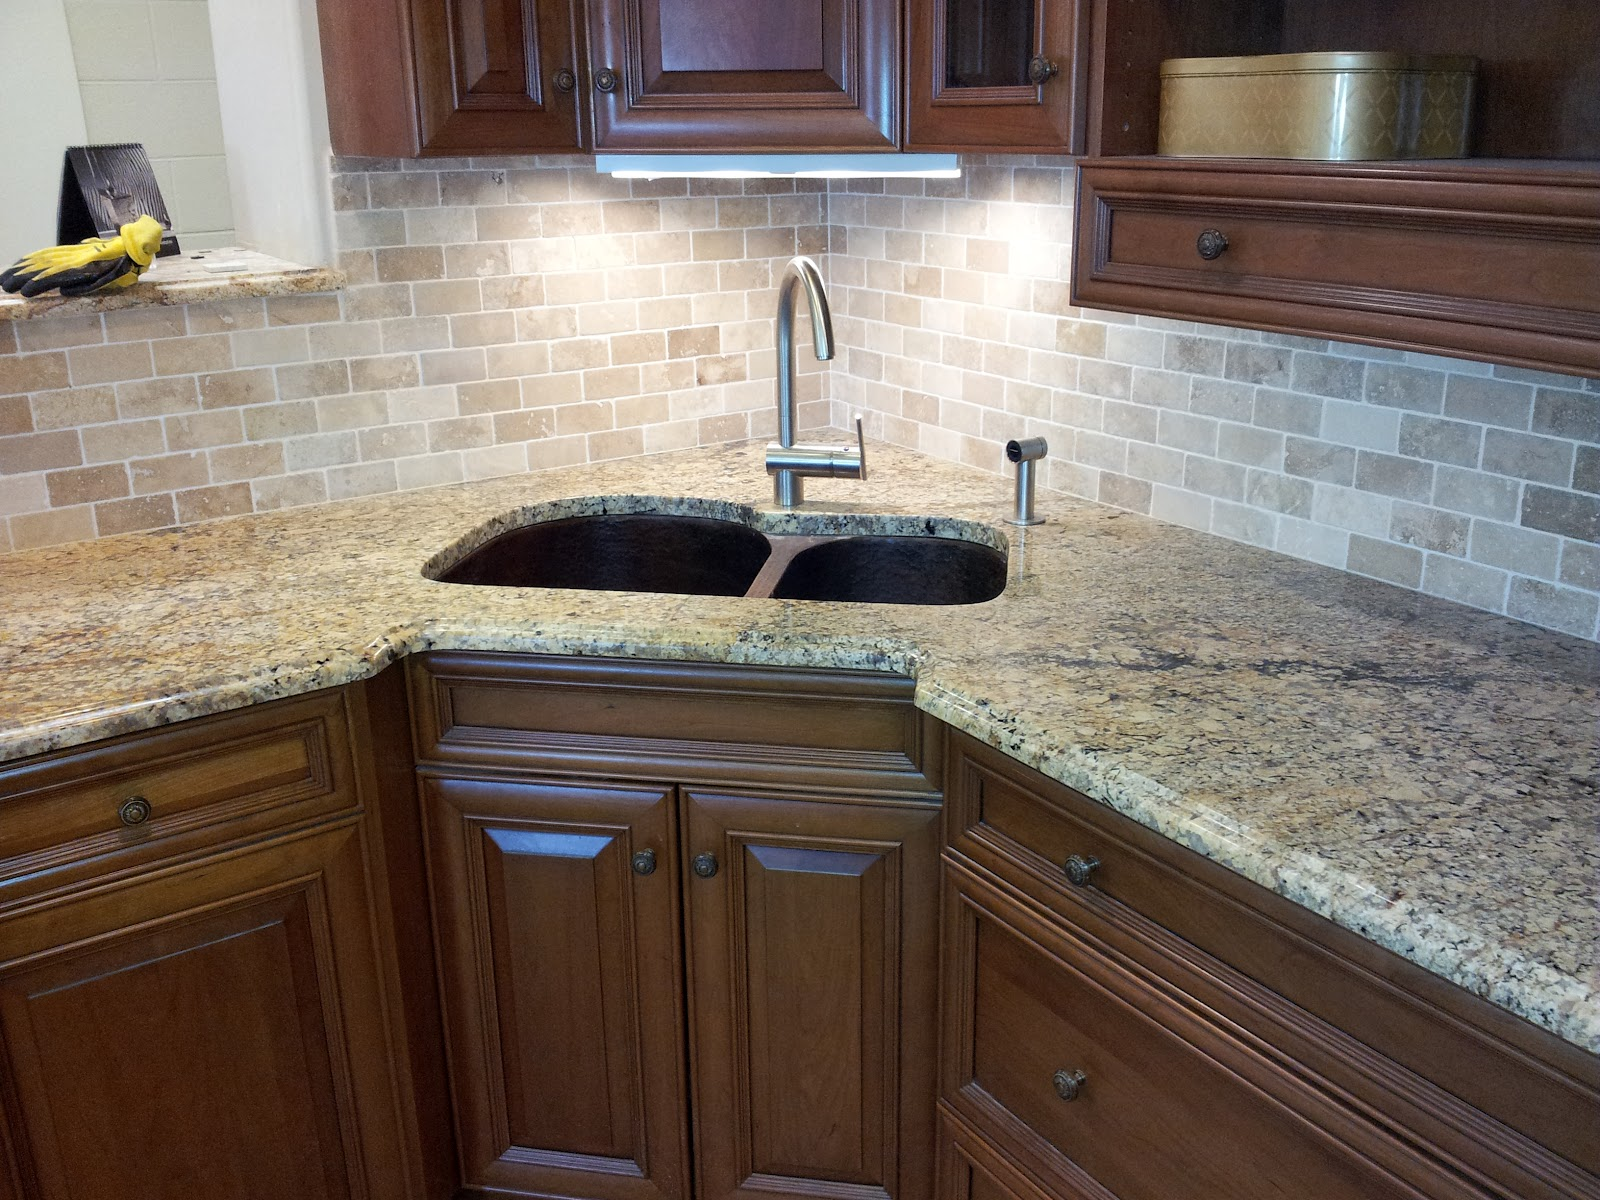 Groutless Backsplash, How to Minimize The Grouts? - HomesFeed on Granite Countertops With Backsplash  id=34850